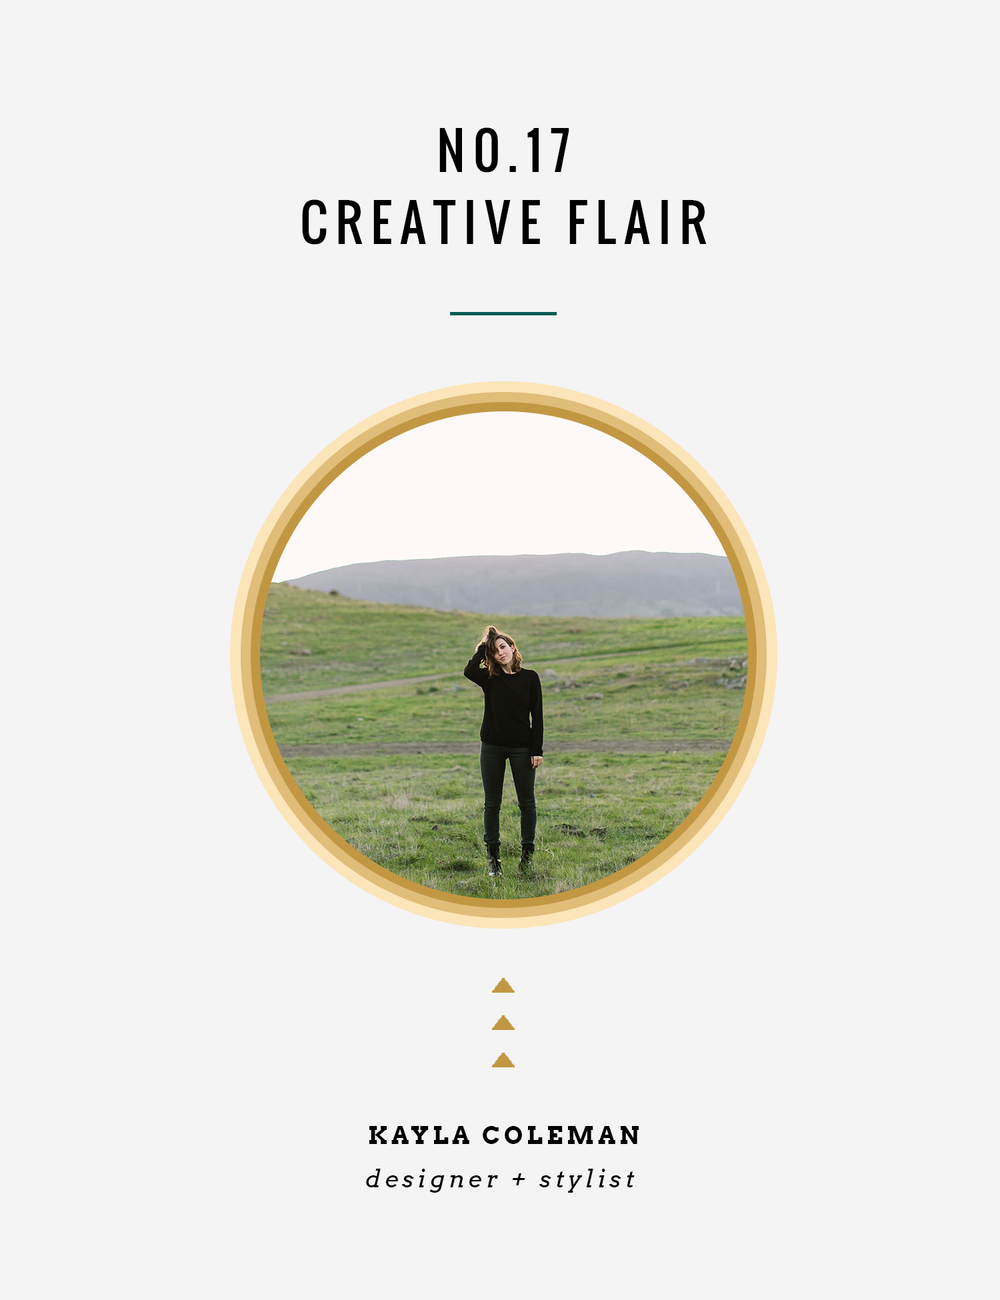 creativeflair_kaylacoleman_inbetween